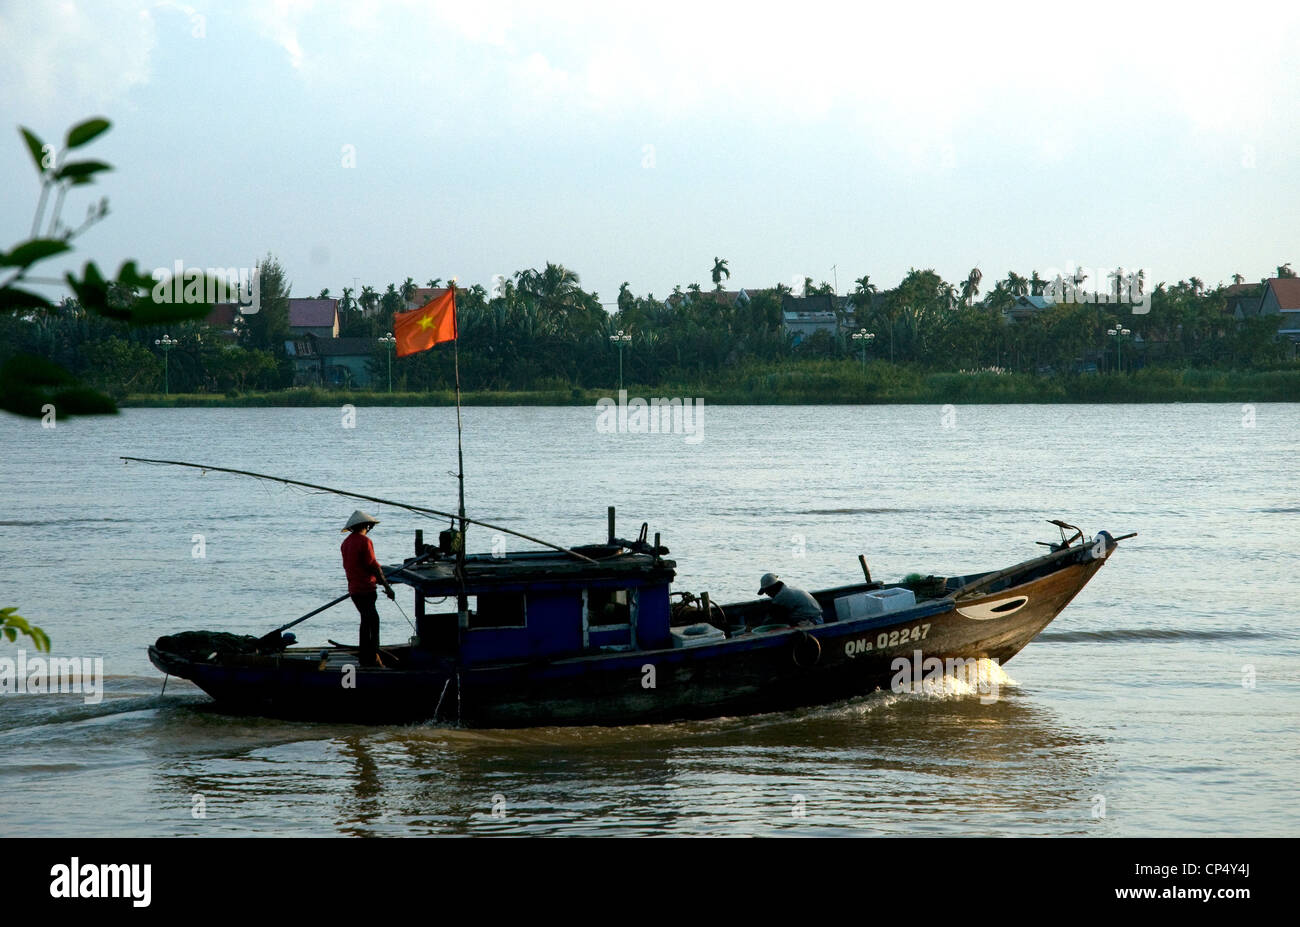 At dusk in Vietnam's Hoi An a single fishing boat returns to port - Stock Image